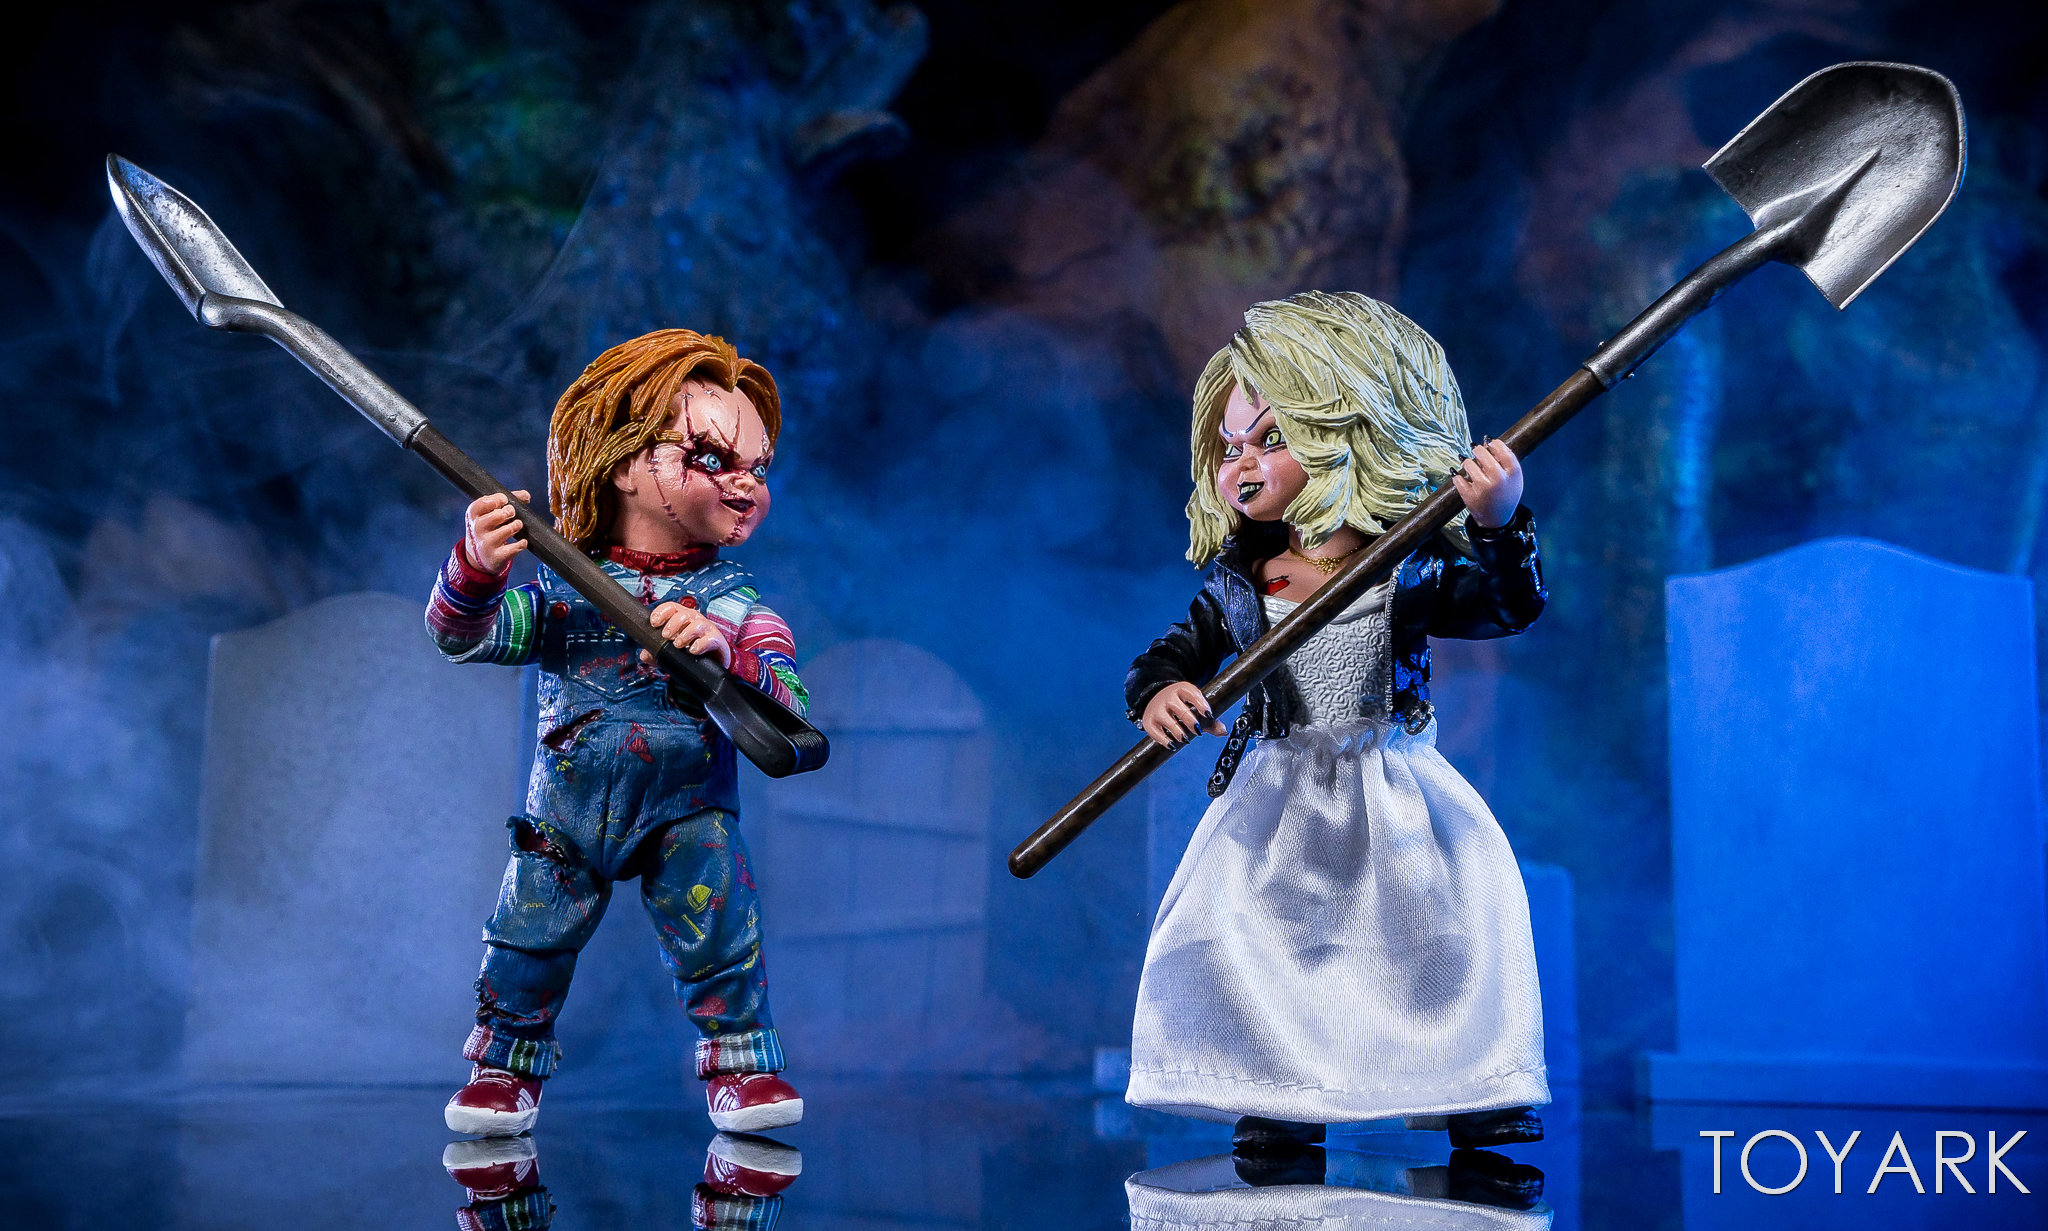 https://news.toyark.com/wp-content/uploads/sites/4/2019/01/Bride-of-Chucky-NECA-Set-057.jpg